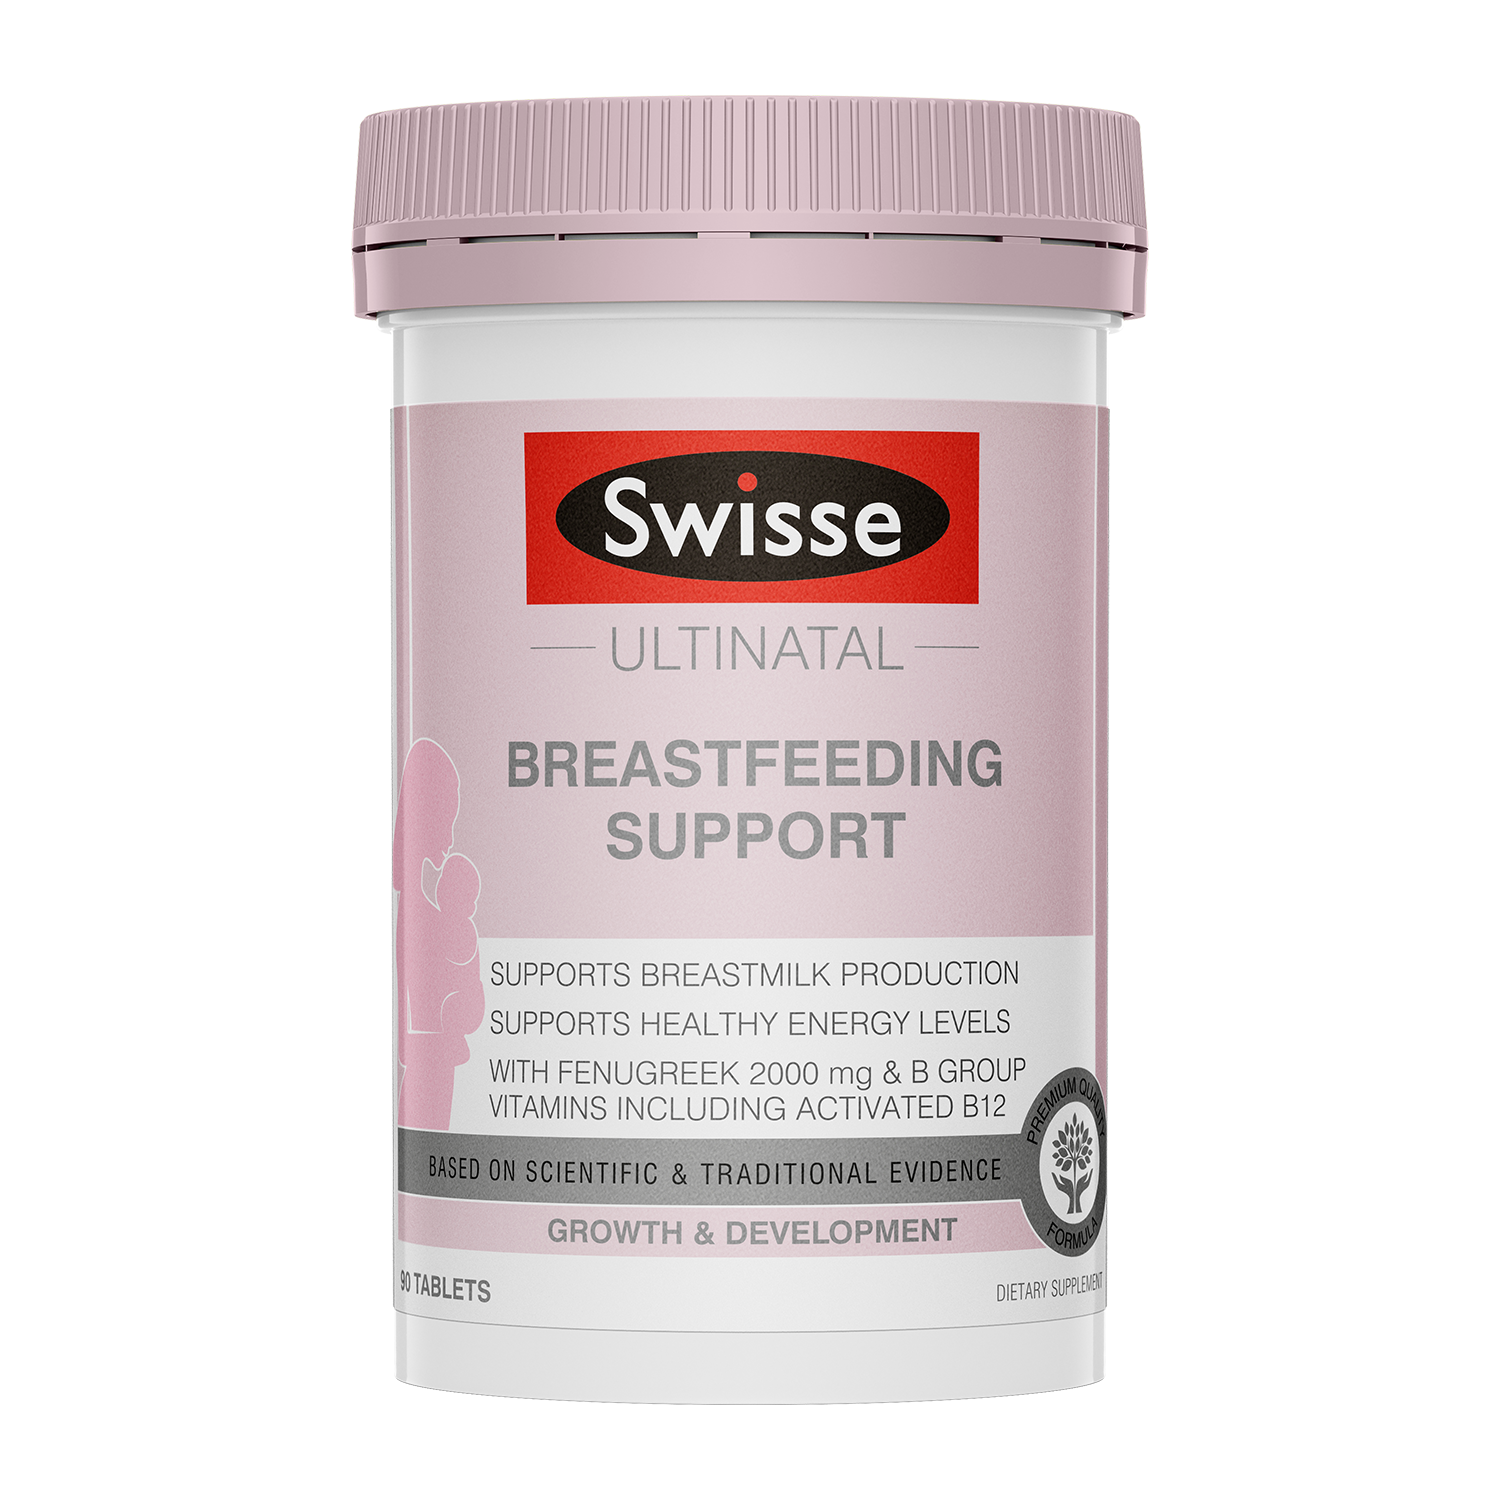 Swisse Ultinatal Breastfeeding support product 90 tabs product image